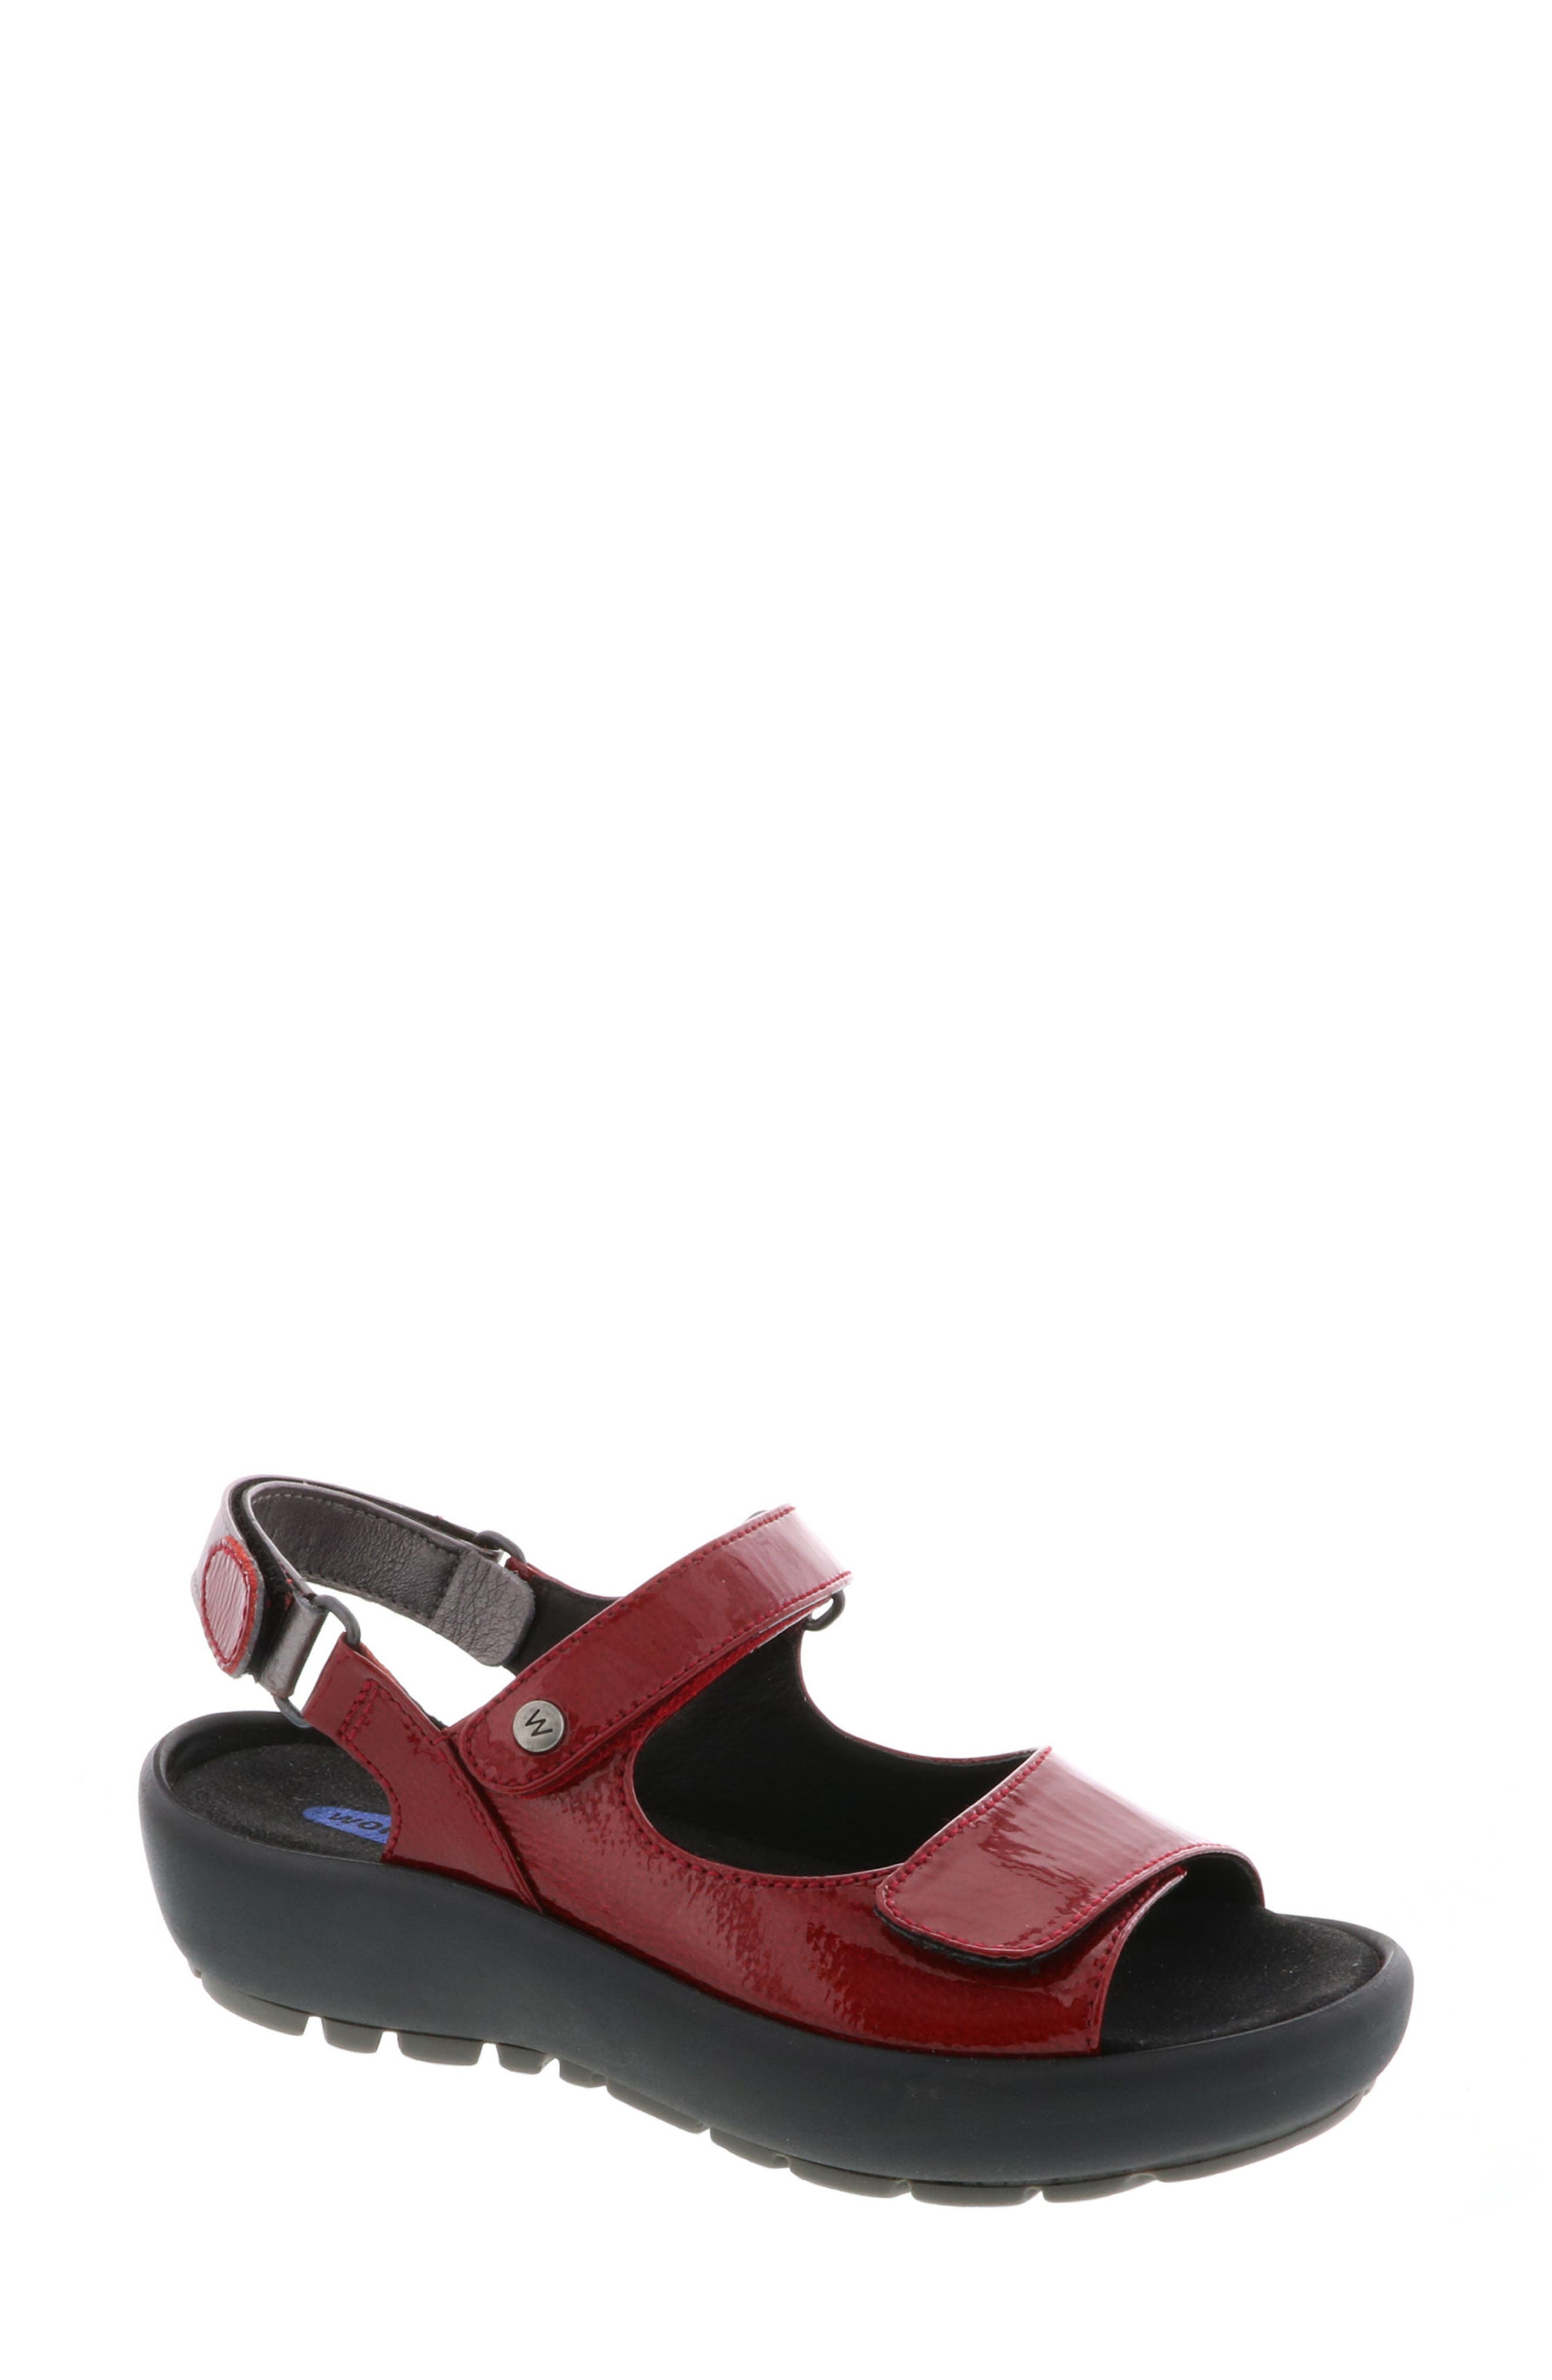 Rio Sandal,                             Main thumbnail 1, color,                             Red Patent Leather